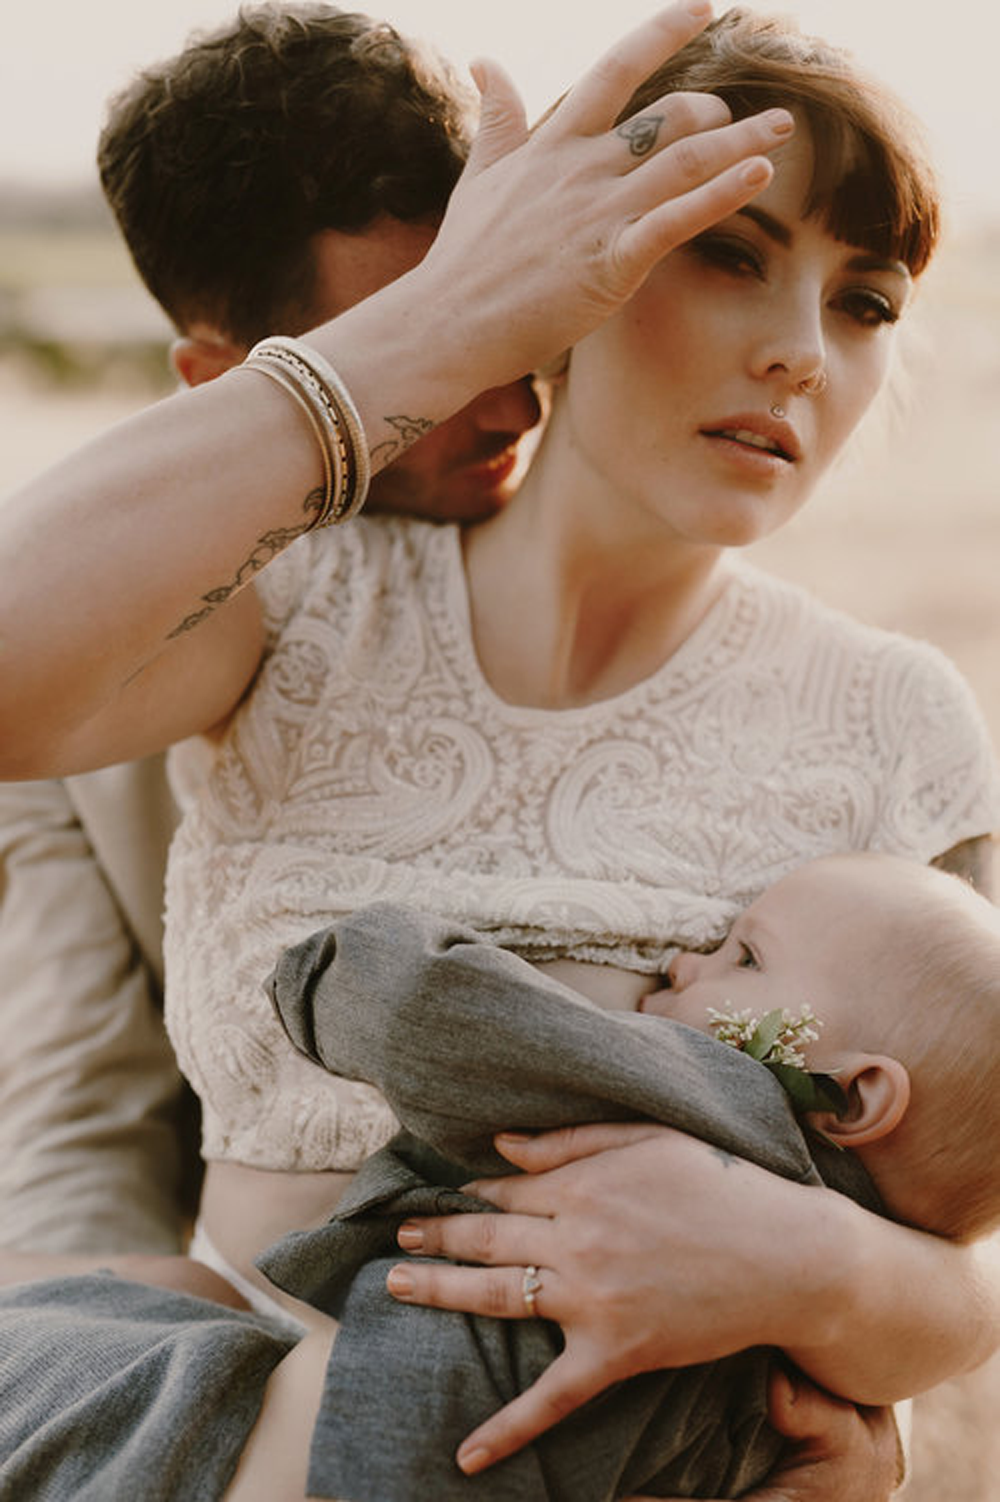 kristen-marie-parker-couple-child-photoshoot-family